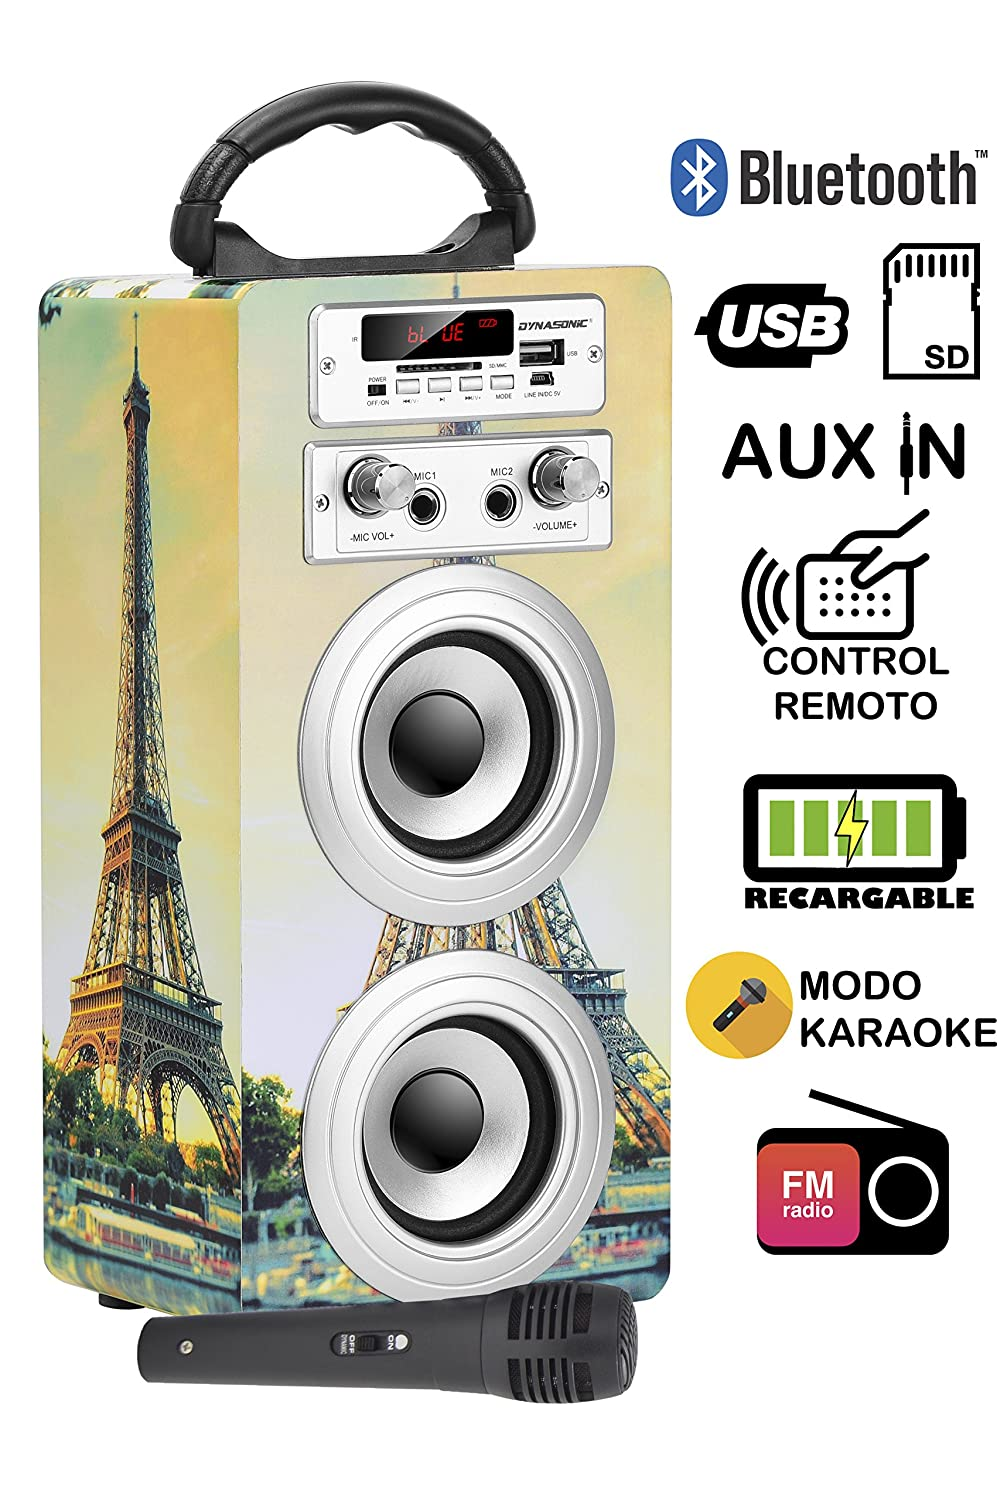 DYNASONIC - Altavoz Bluetooth Portatil con modo Karaoke, Radio FM y Lector USB SD (Modelo 11) Easo Plus Corporate 025-11